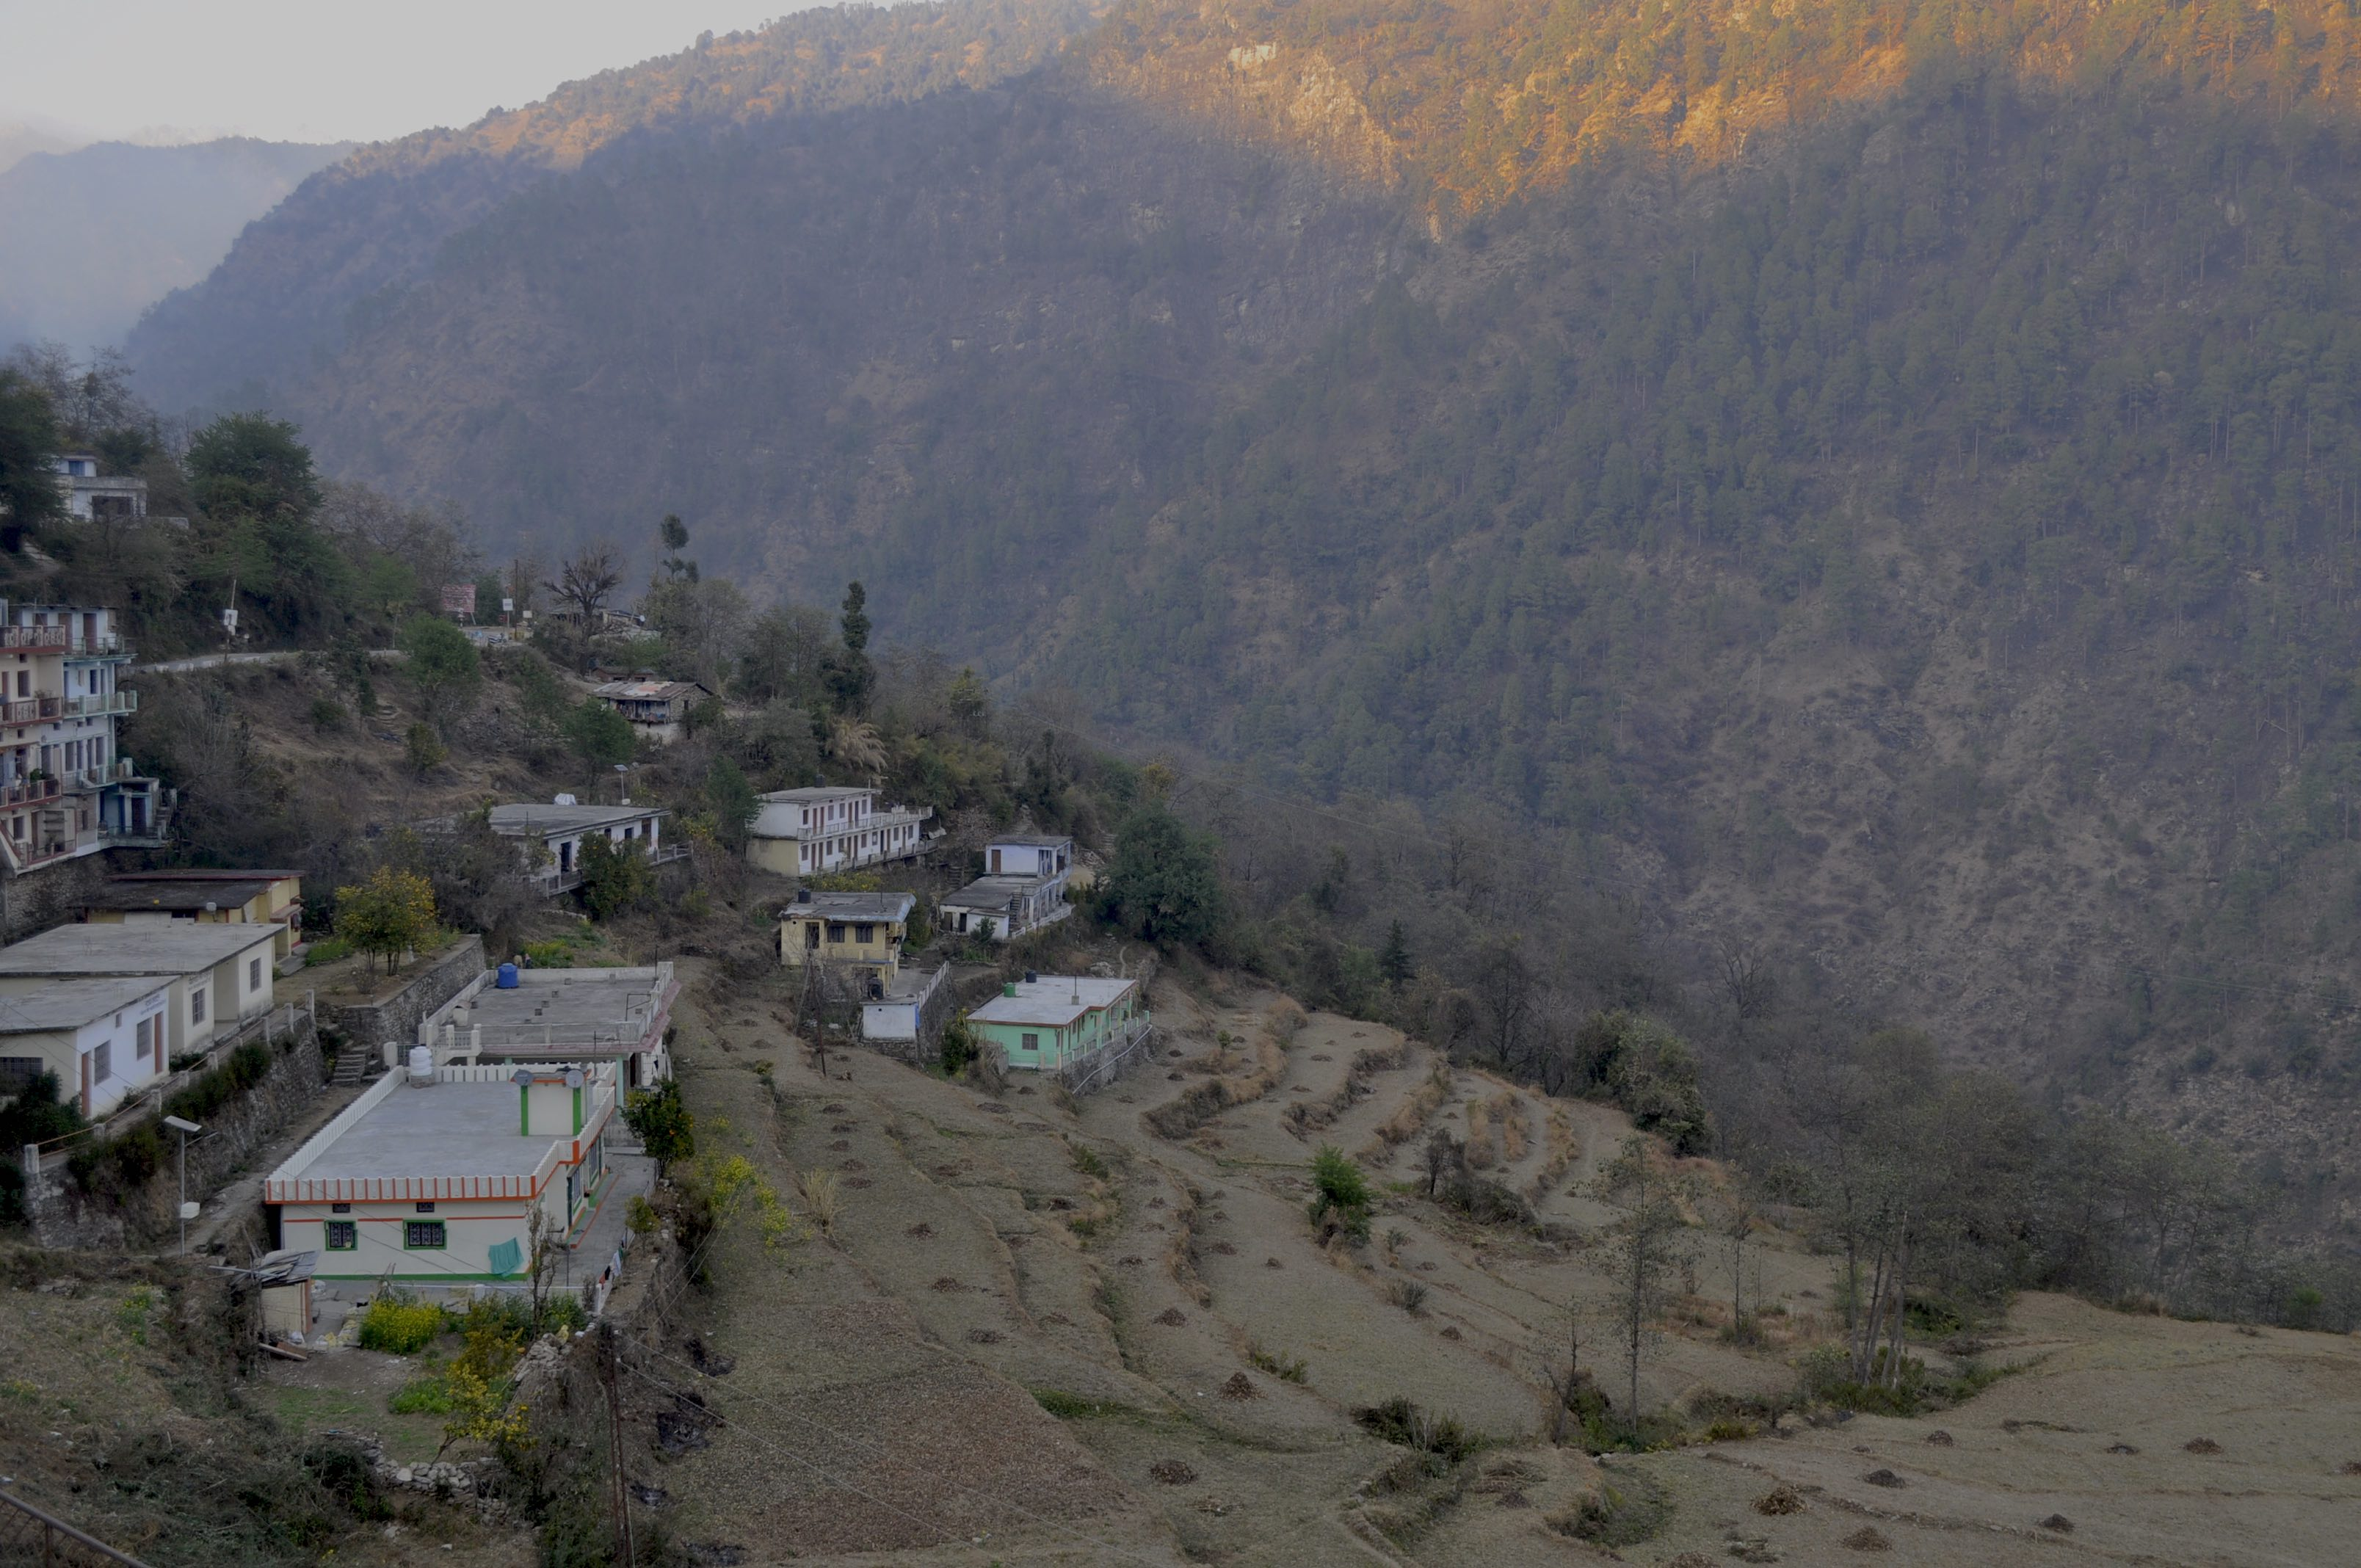 Phata village and fields